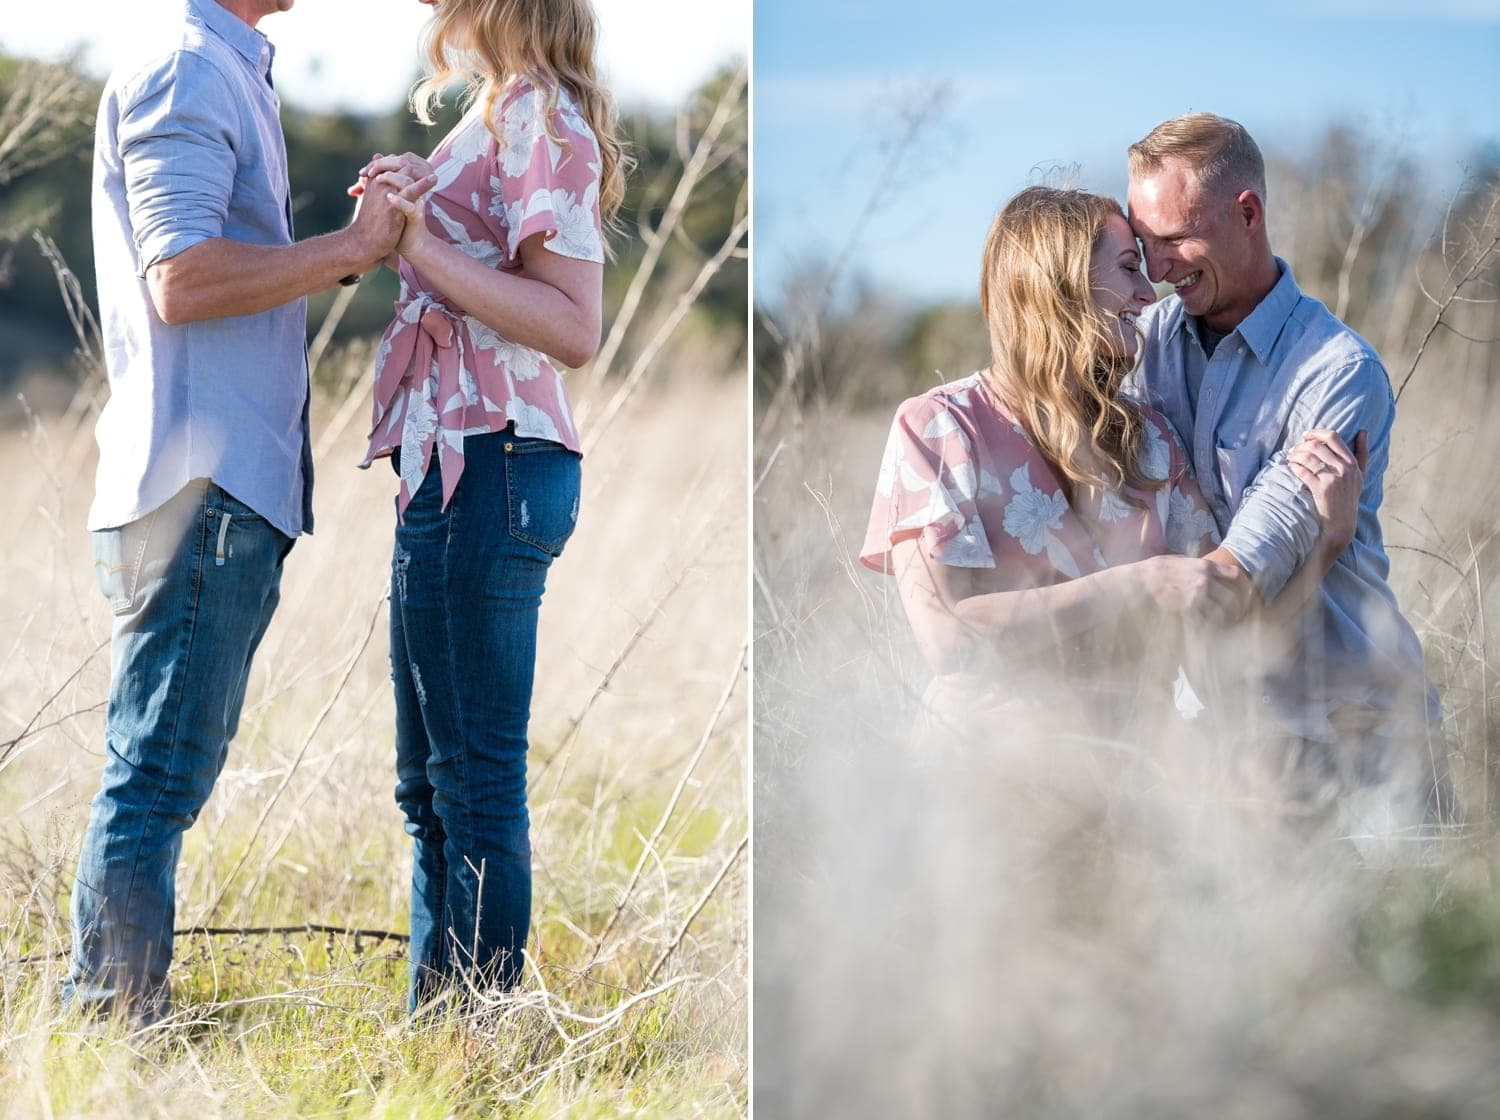 Couple in a field for their engagement session.